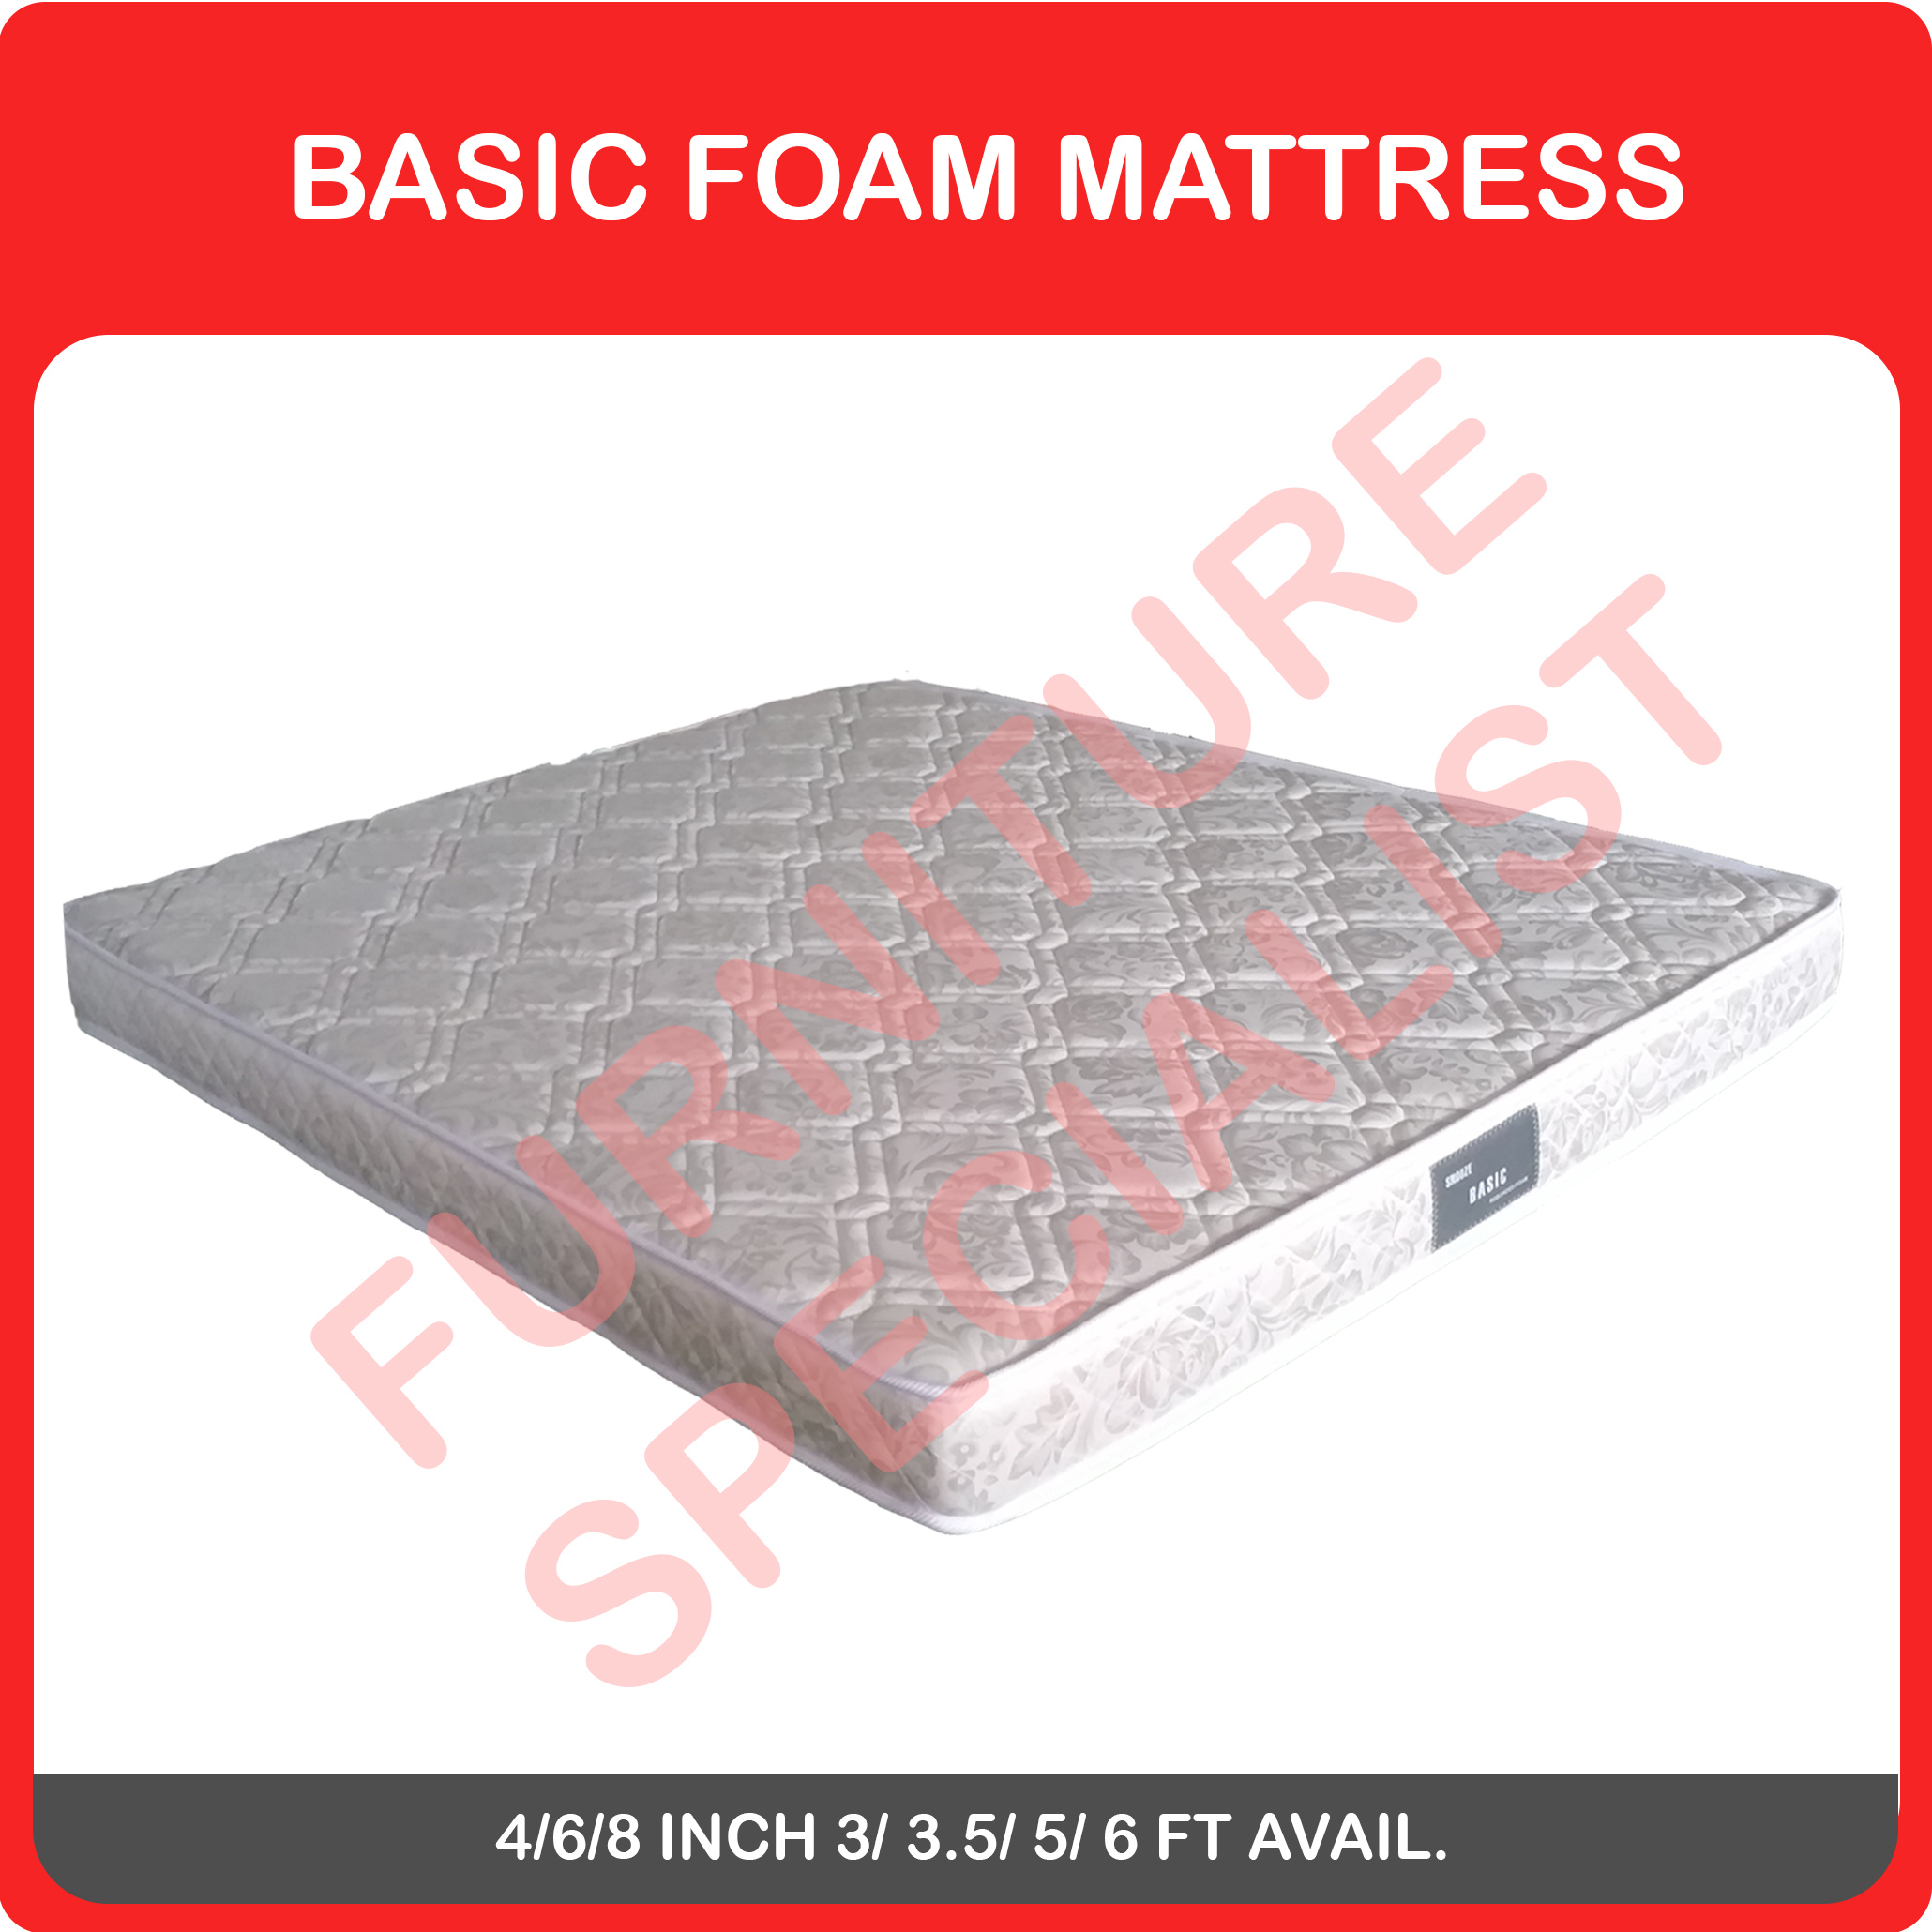 Basic Foam Mattress